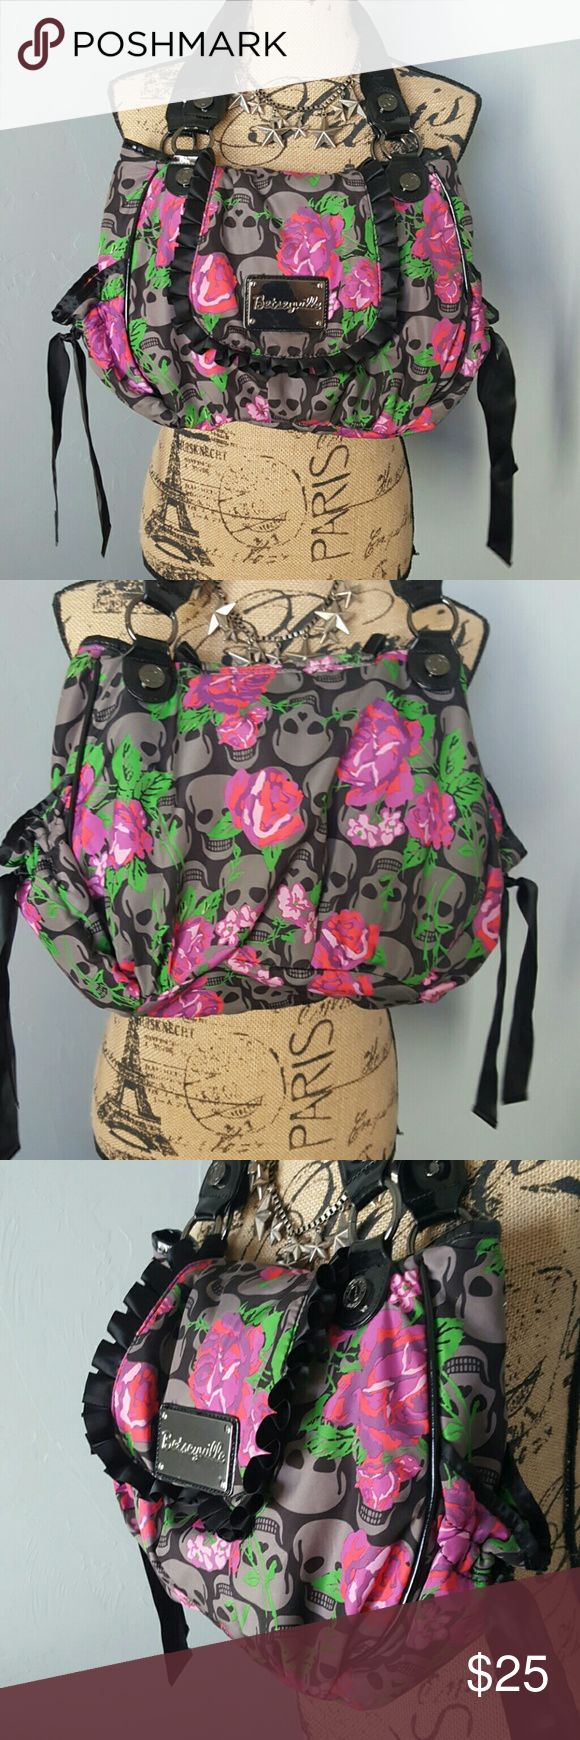 Betsey Johnson Floral and Skull Purse Amazing purse!!! In great condition. Only used a handful of times. Betsey Johnson Bags Shoulder Bags